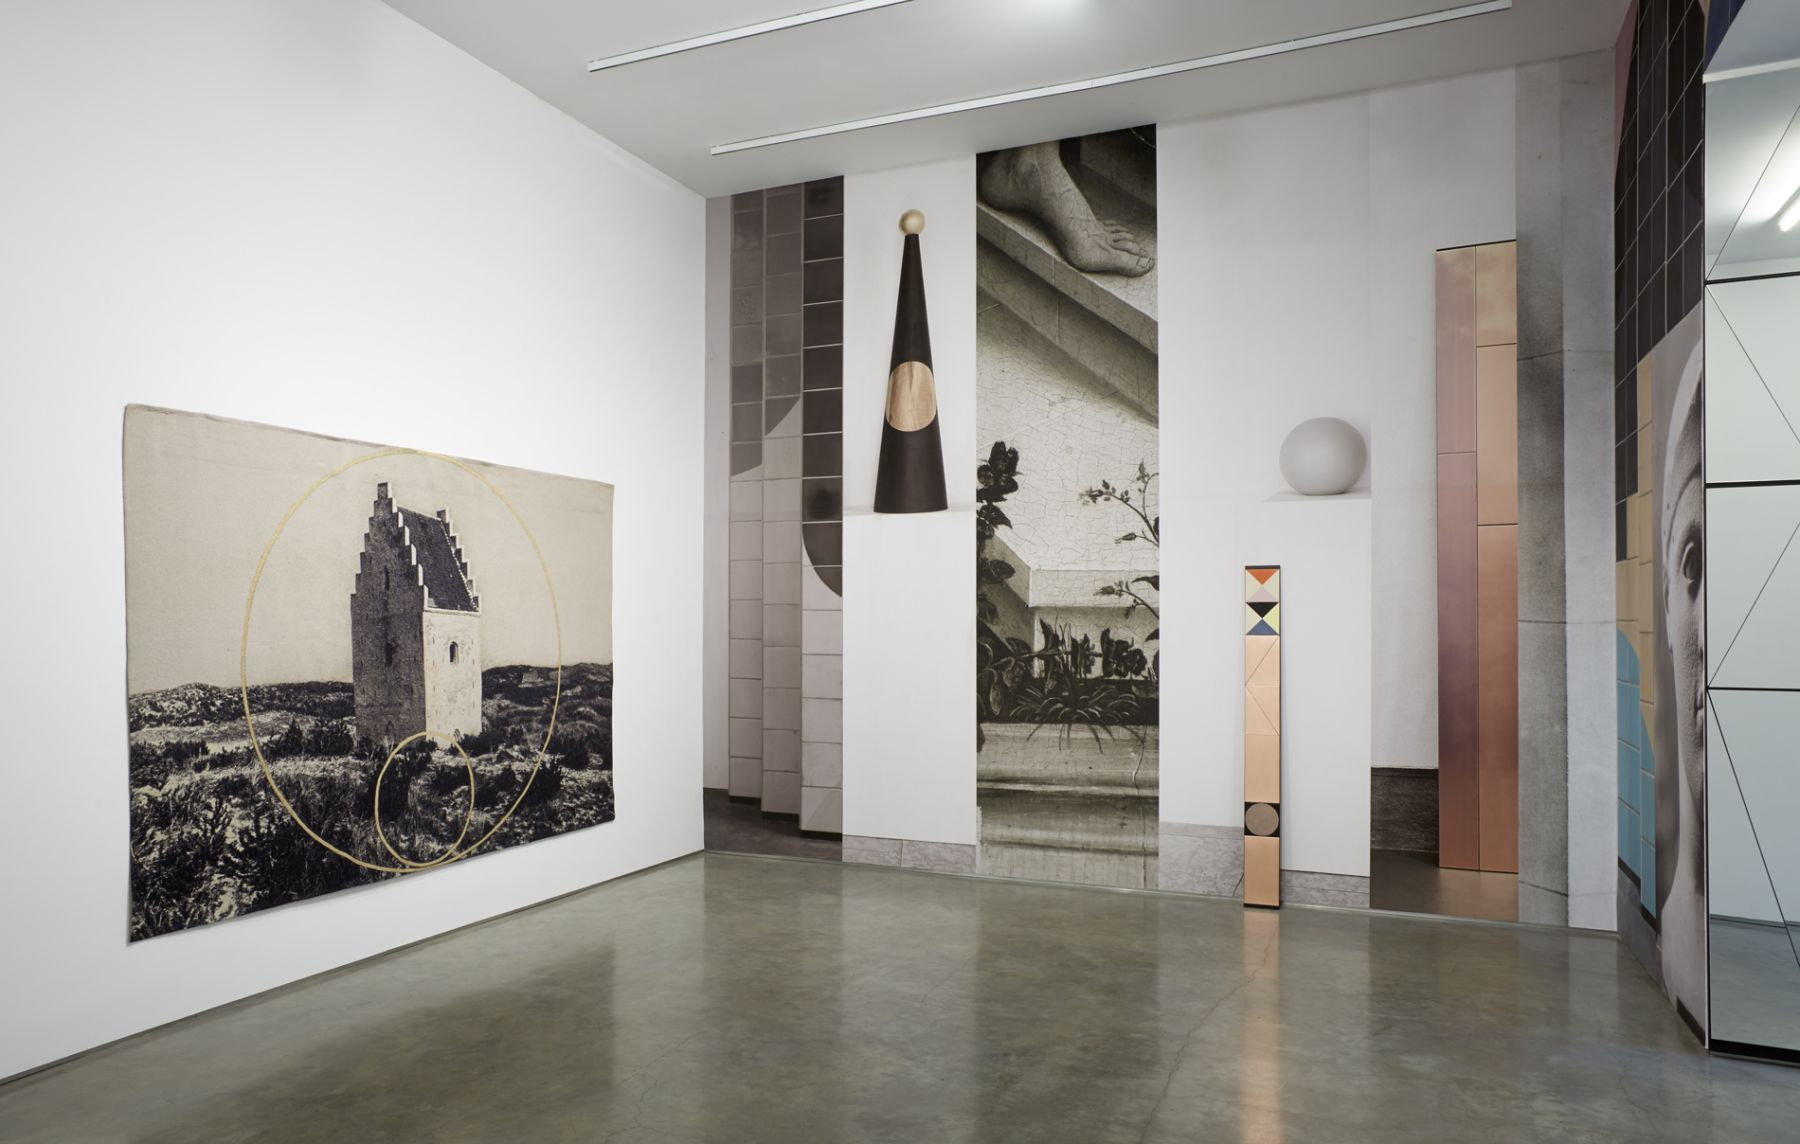 The Mirror (Installation View), Marianne Boesky Gallery, 2013